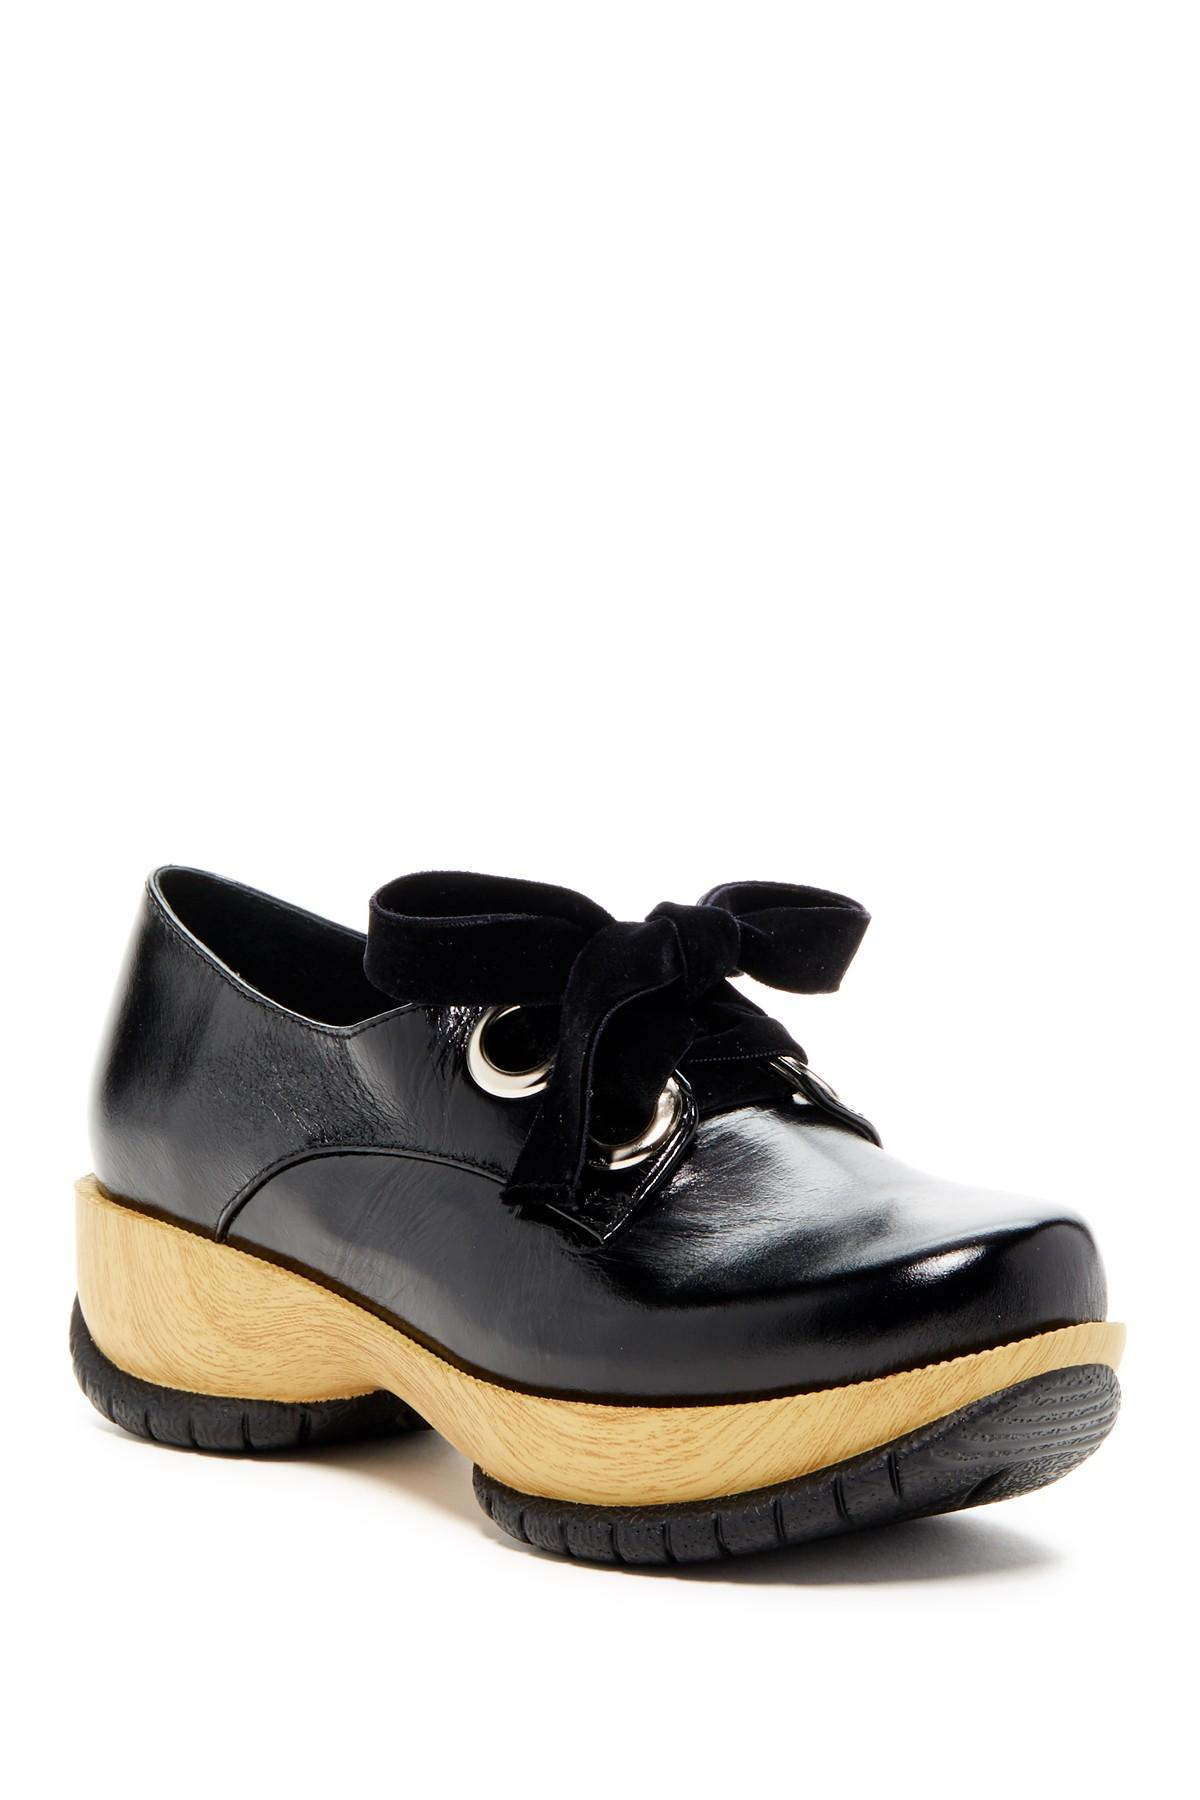 Antelope Leather Shoes